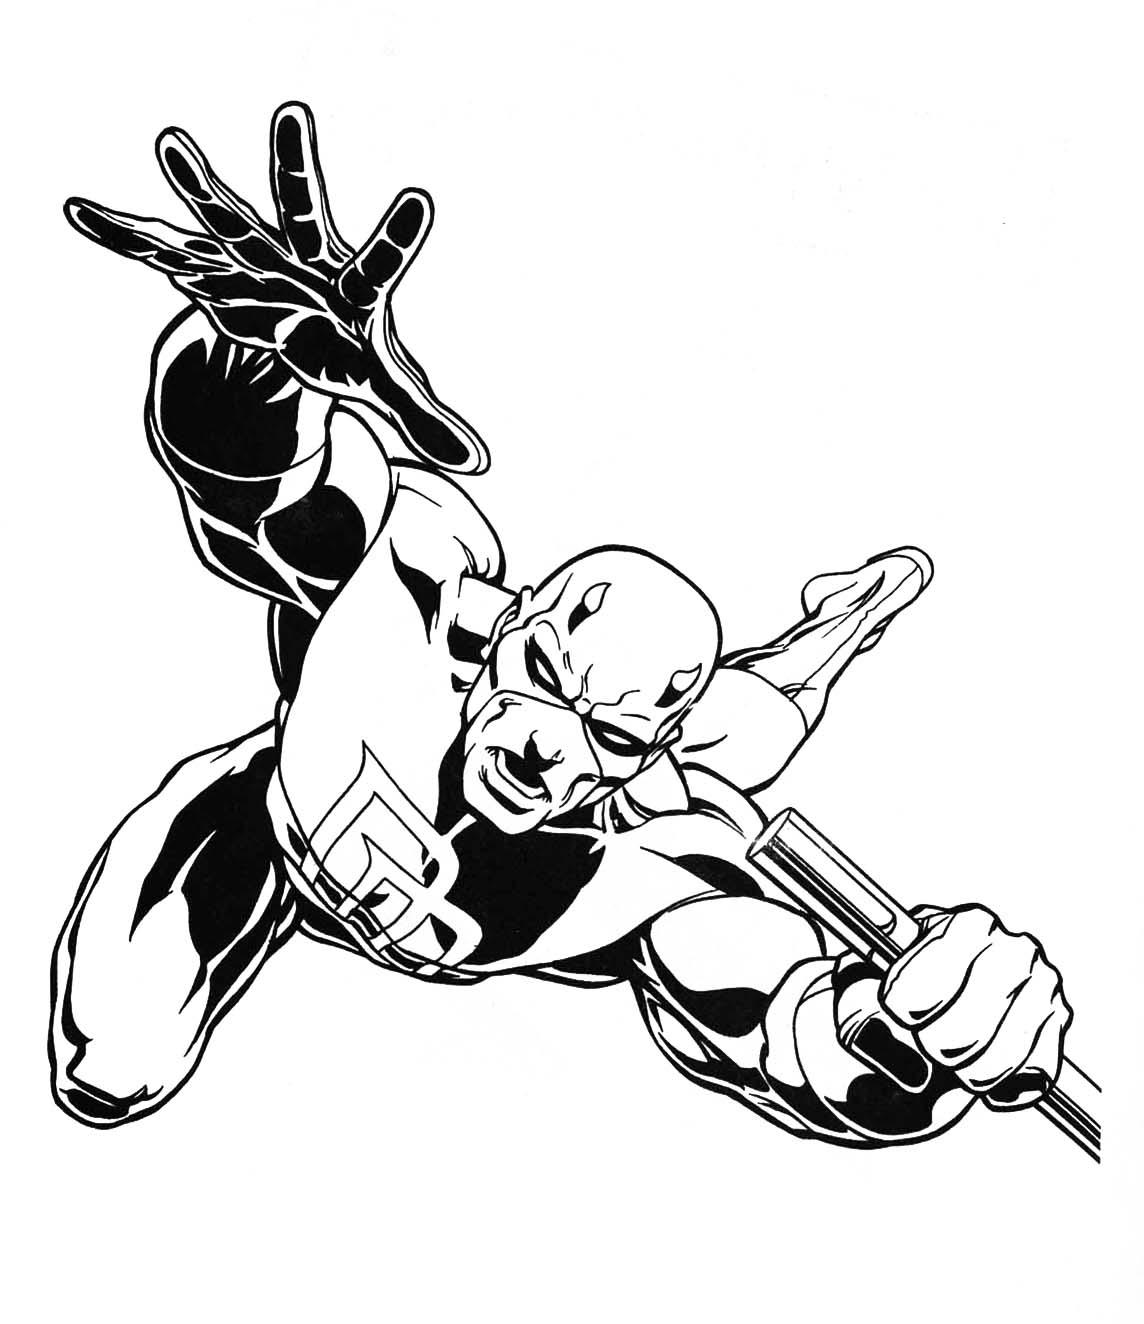 1144x1324 Movies Marvel Daredevil Coloring Page To Print For Pages